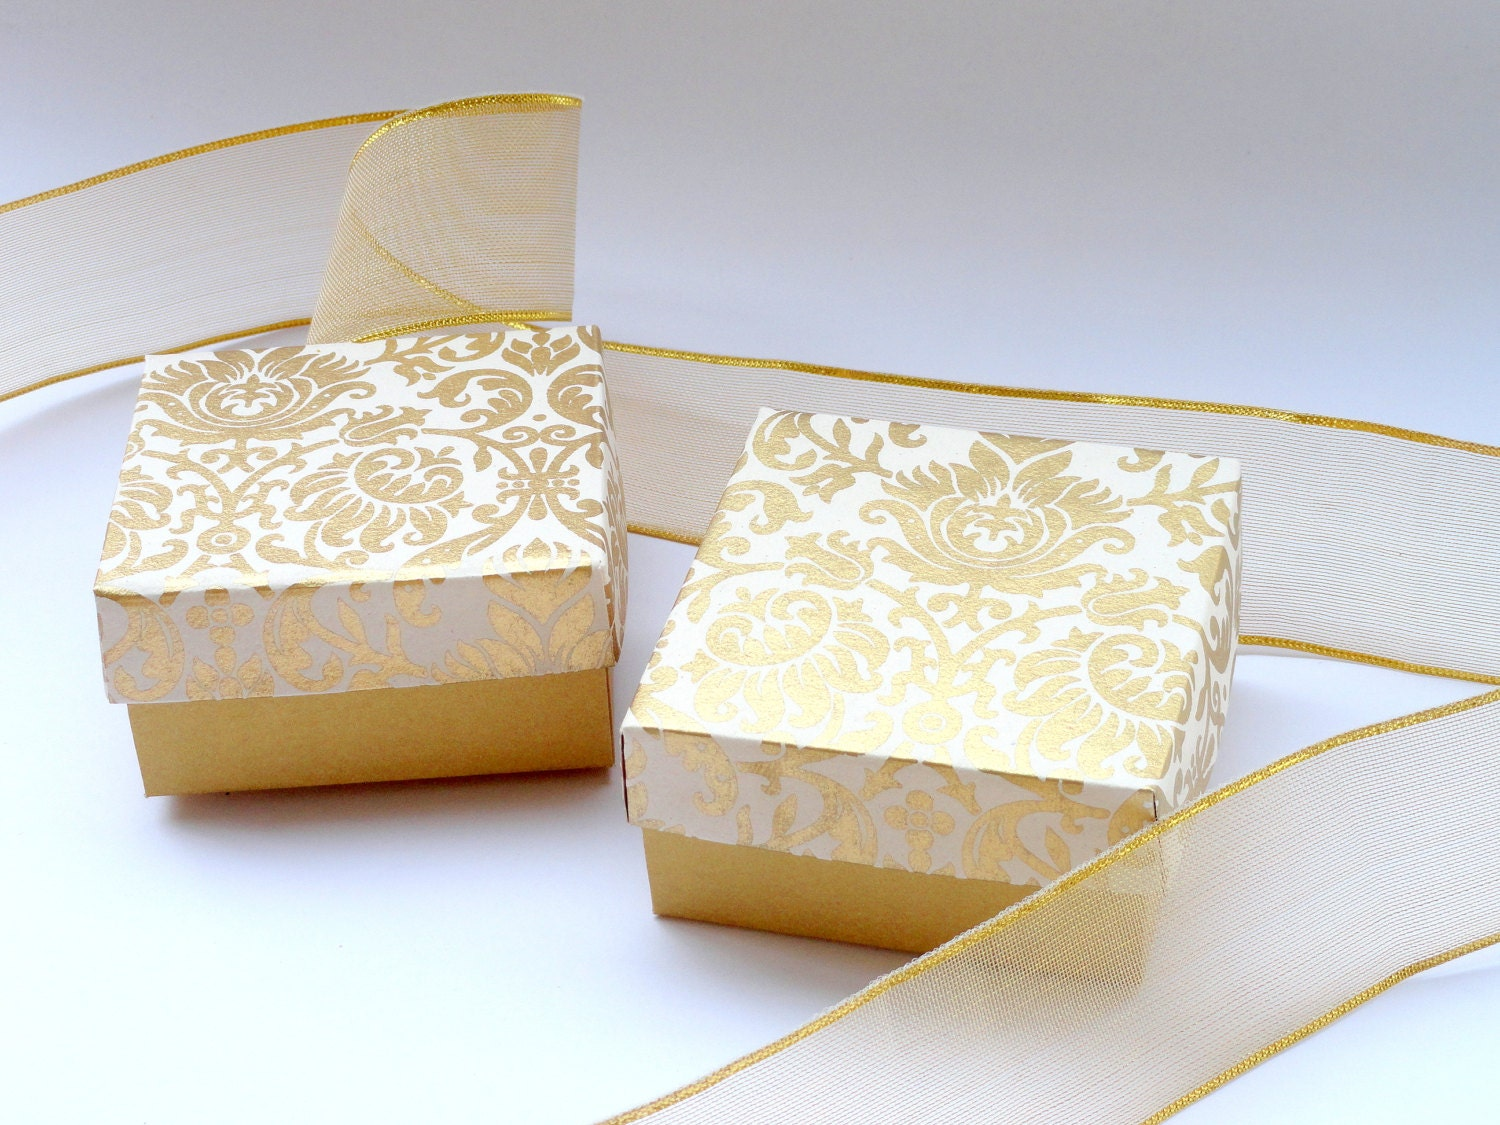 gold wedding favor boxes - Wedding Decor Ideas